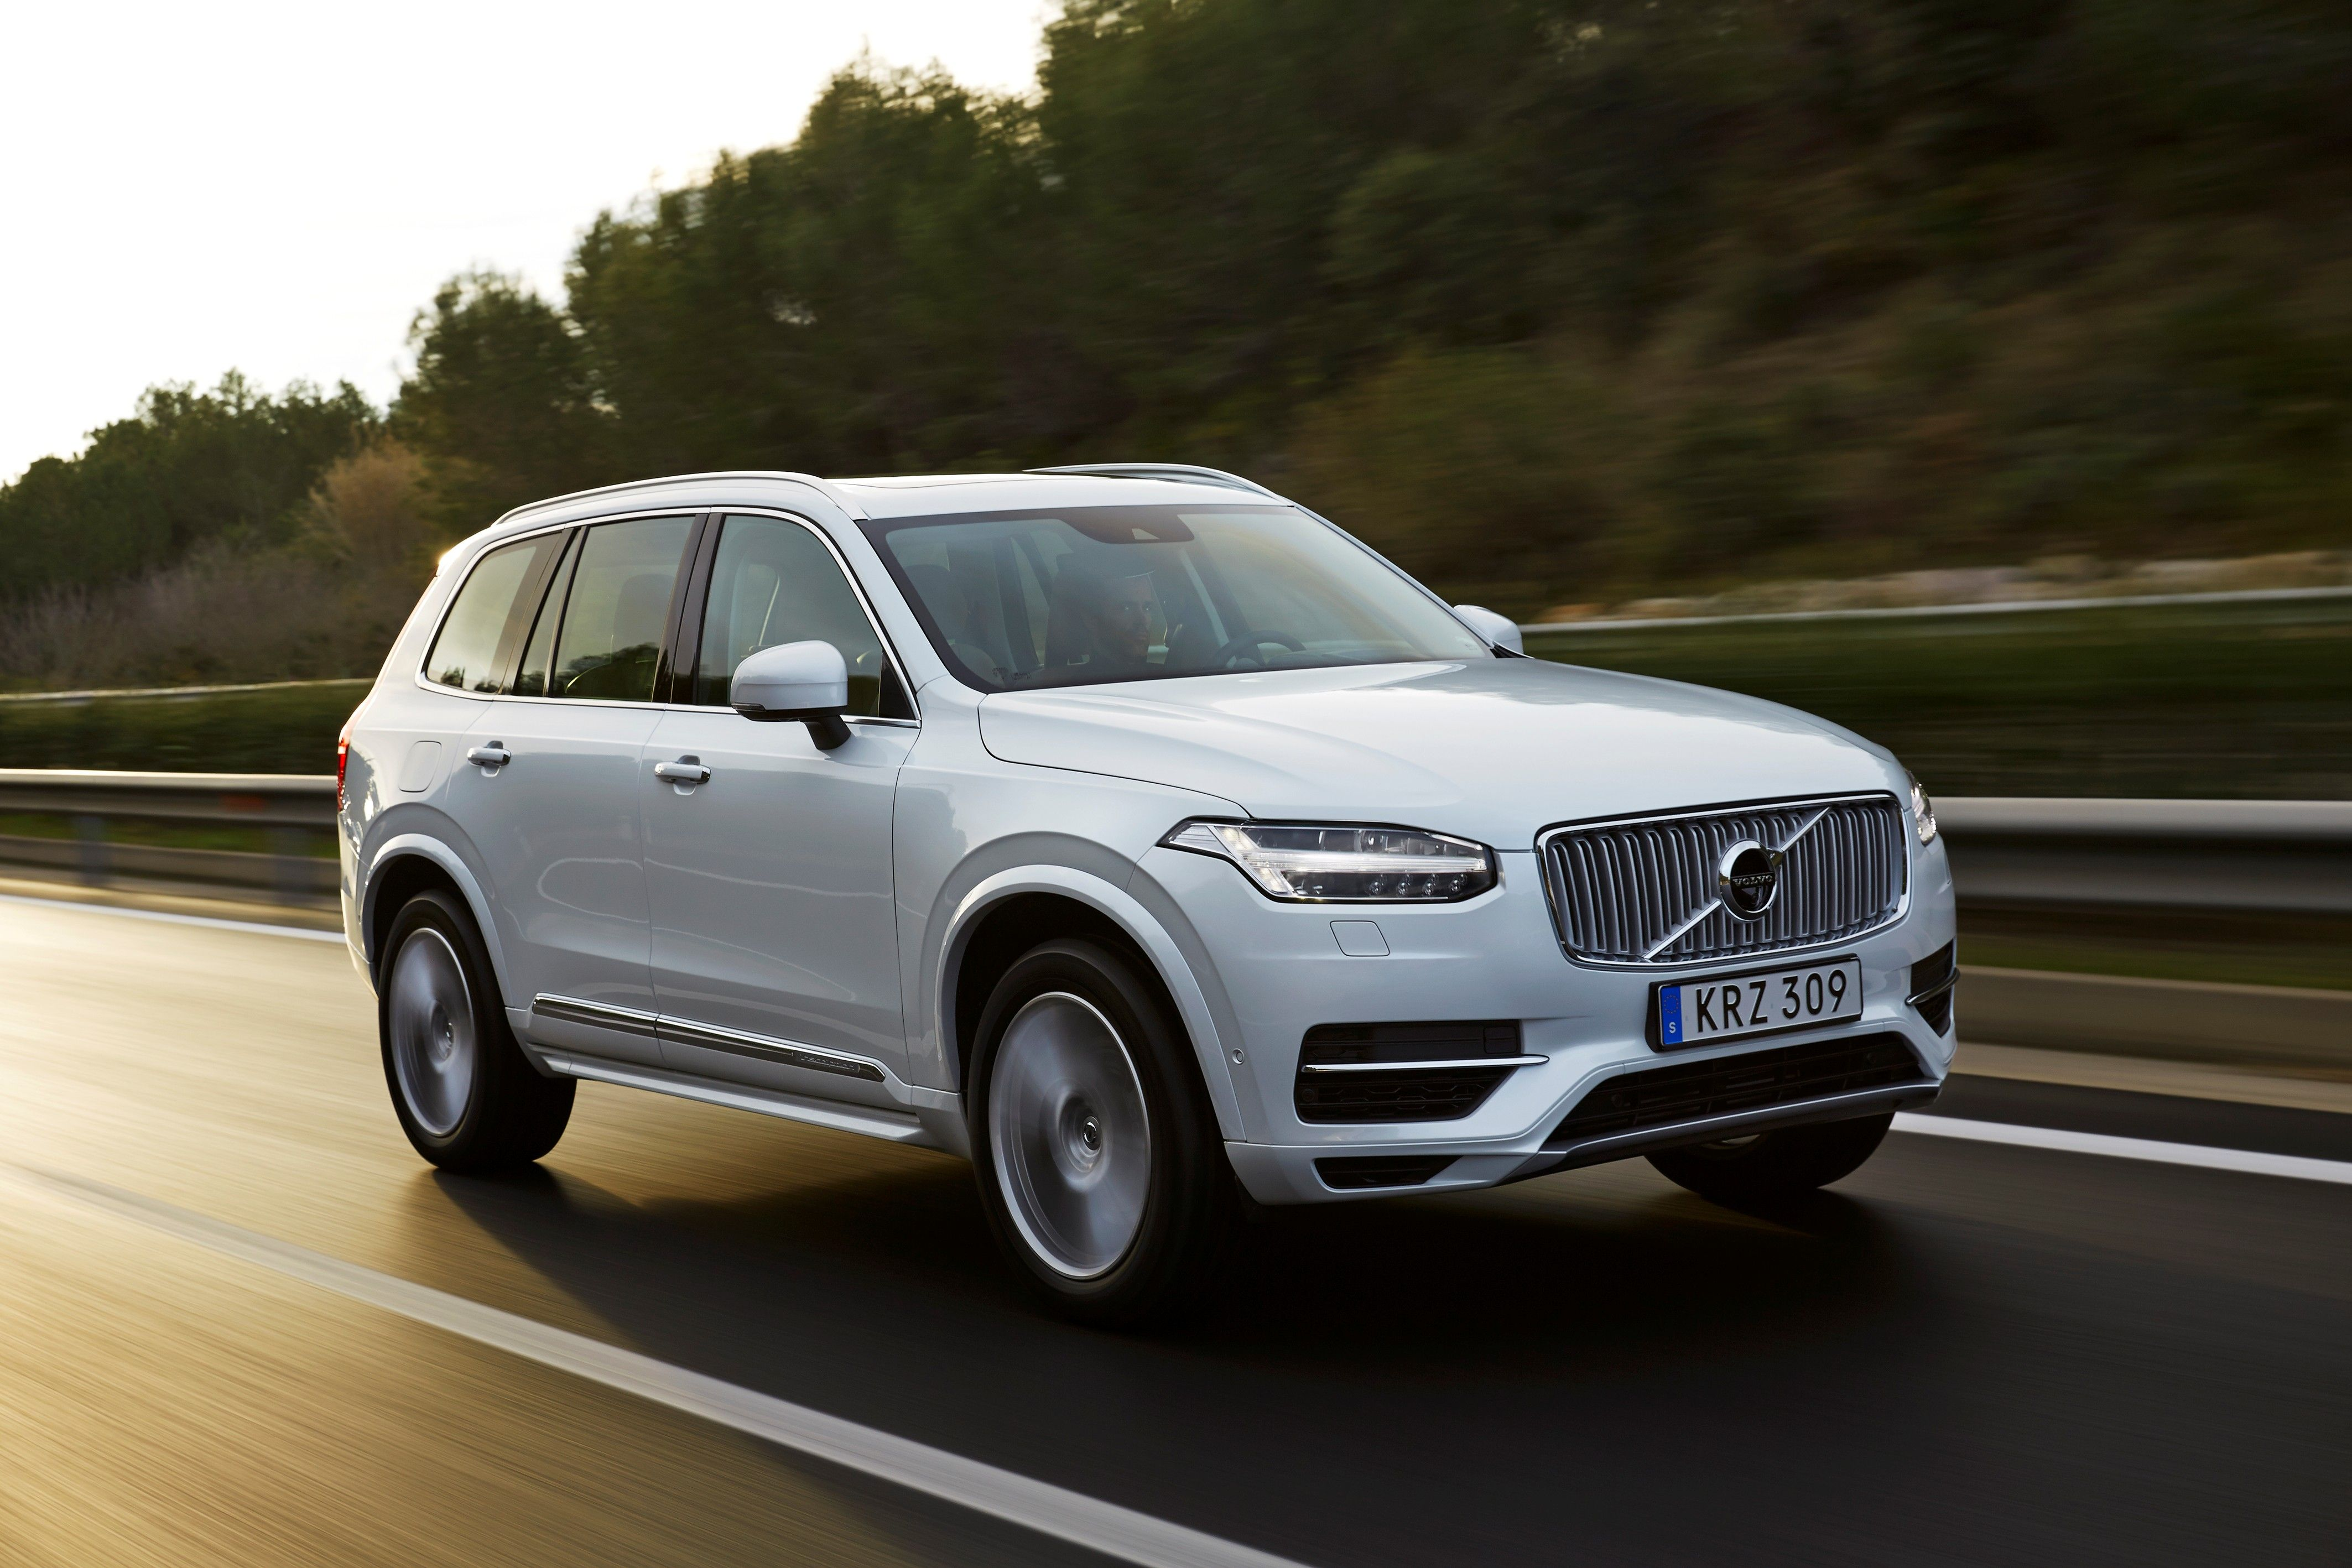 The New Volvo Xc90 T8 Twin Engine Petrol Plug In Hybrid Volvocarsglobal Hybrid Car Volvo Xc90 Volvo Cars